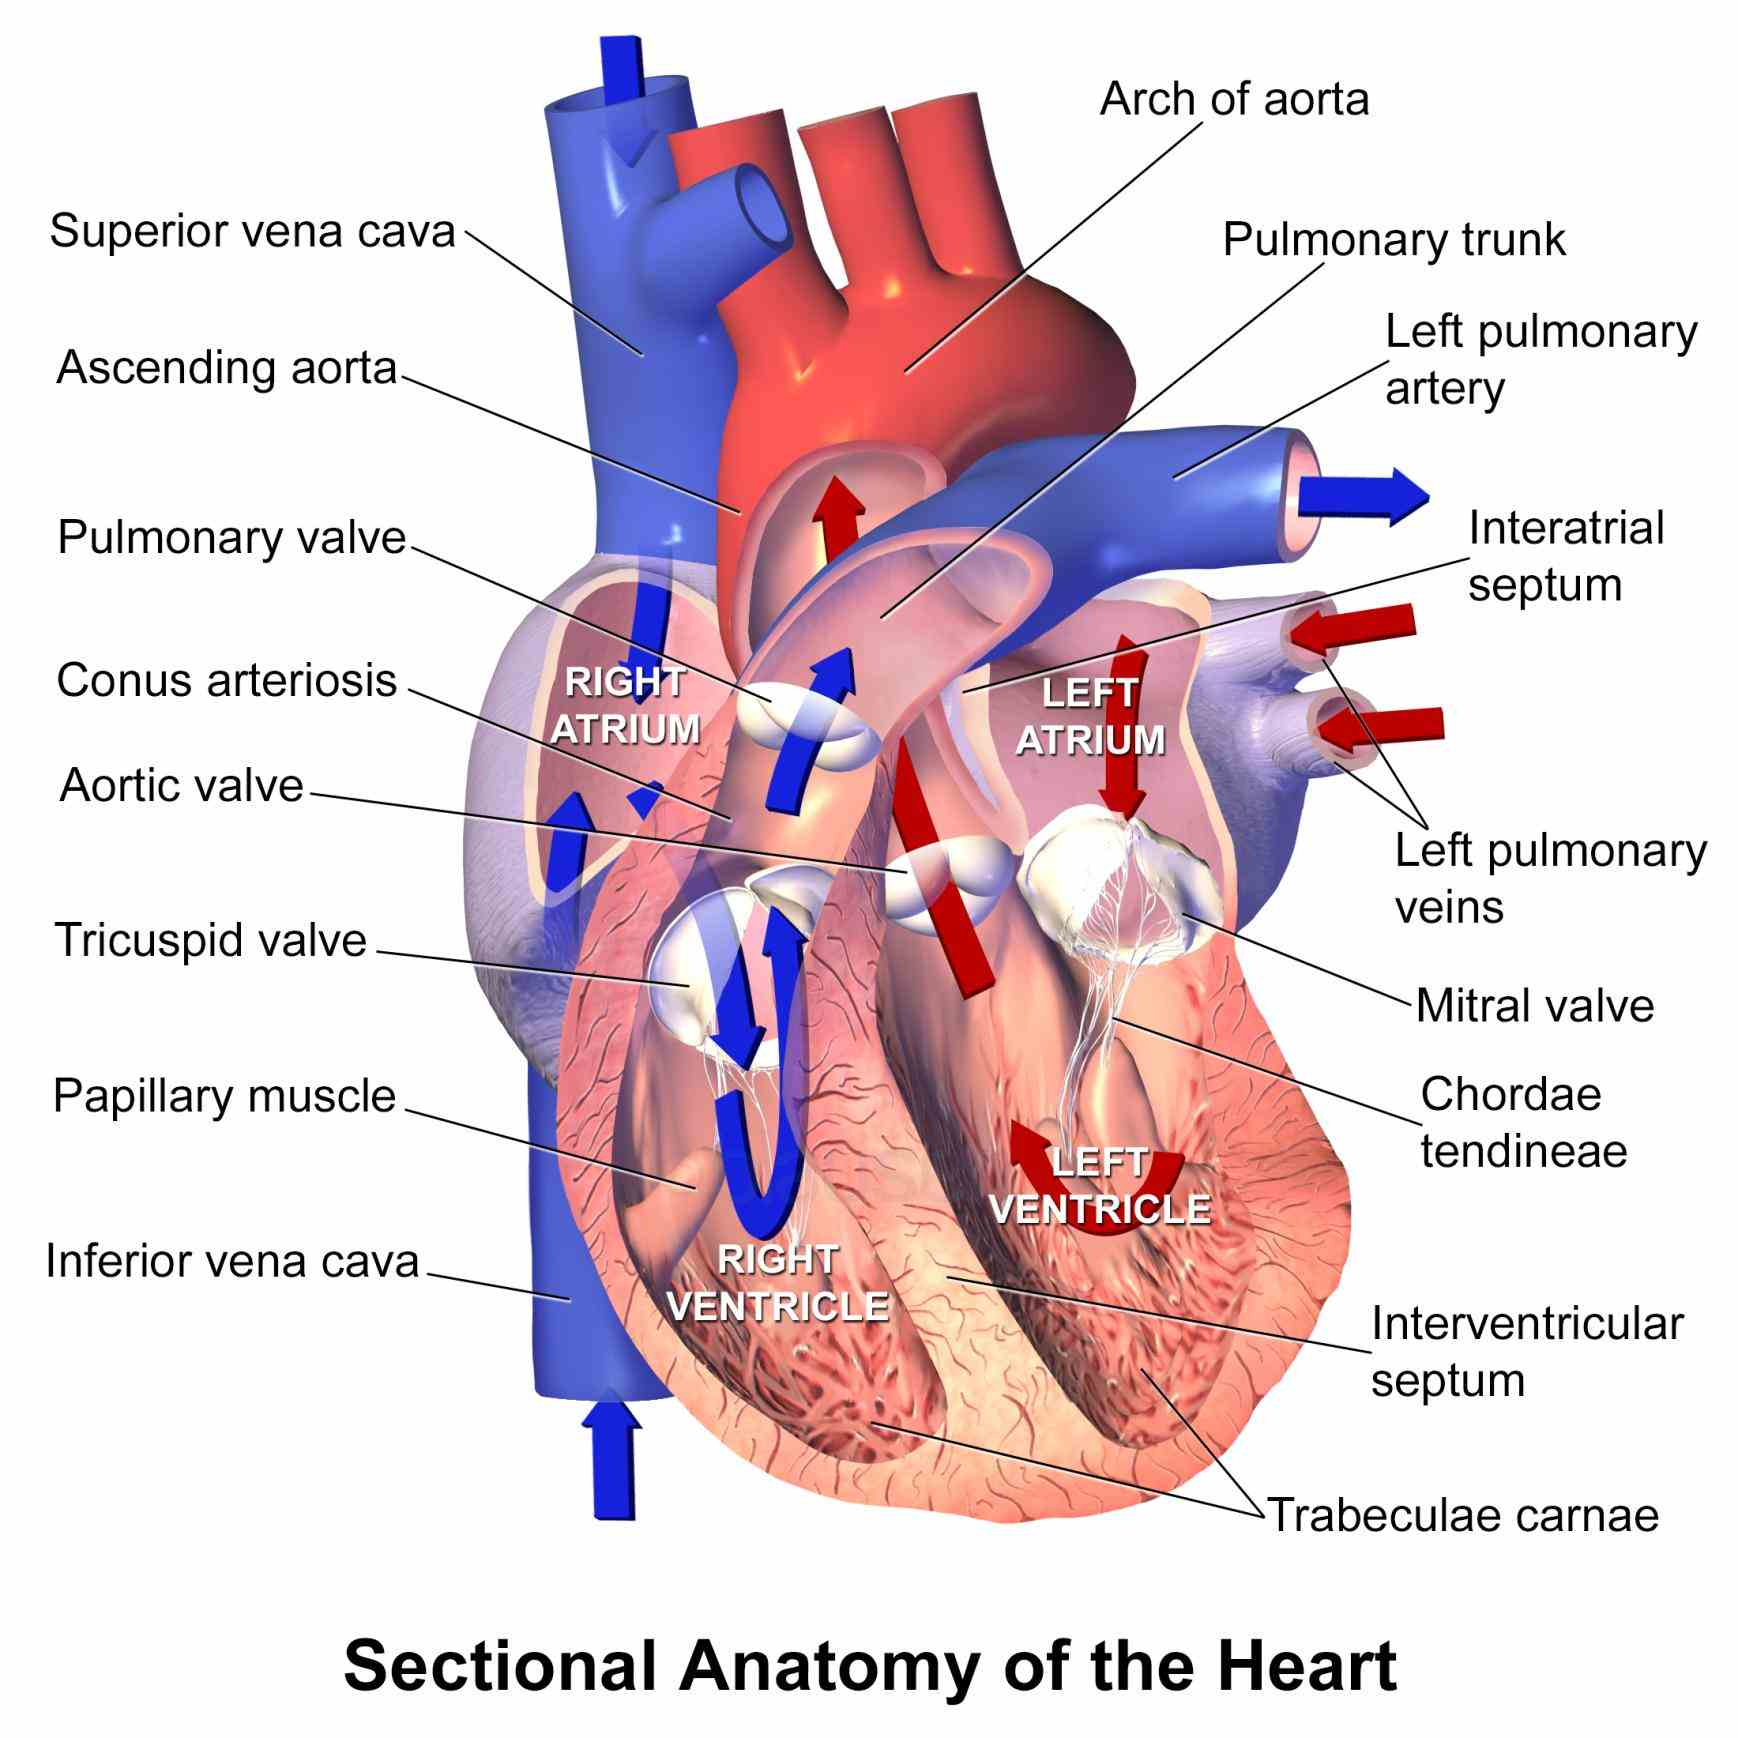 photos affordable and search from millions of royalty free images vectors thousands added daily de Images Of Human Heart